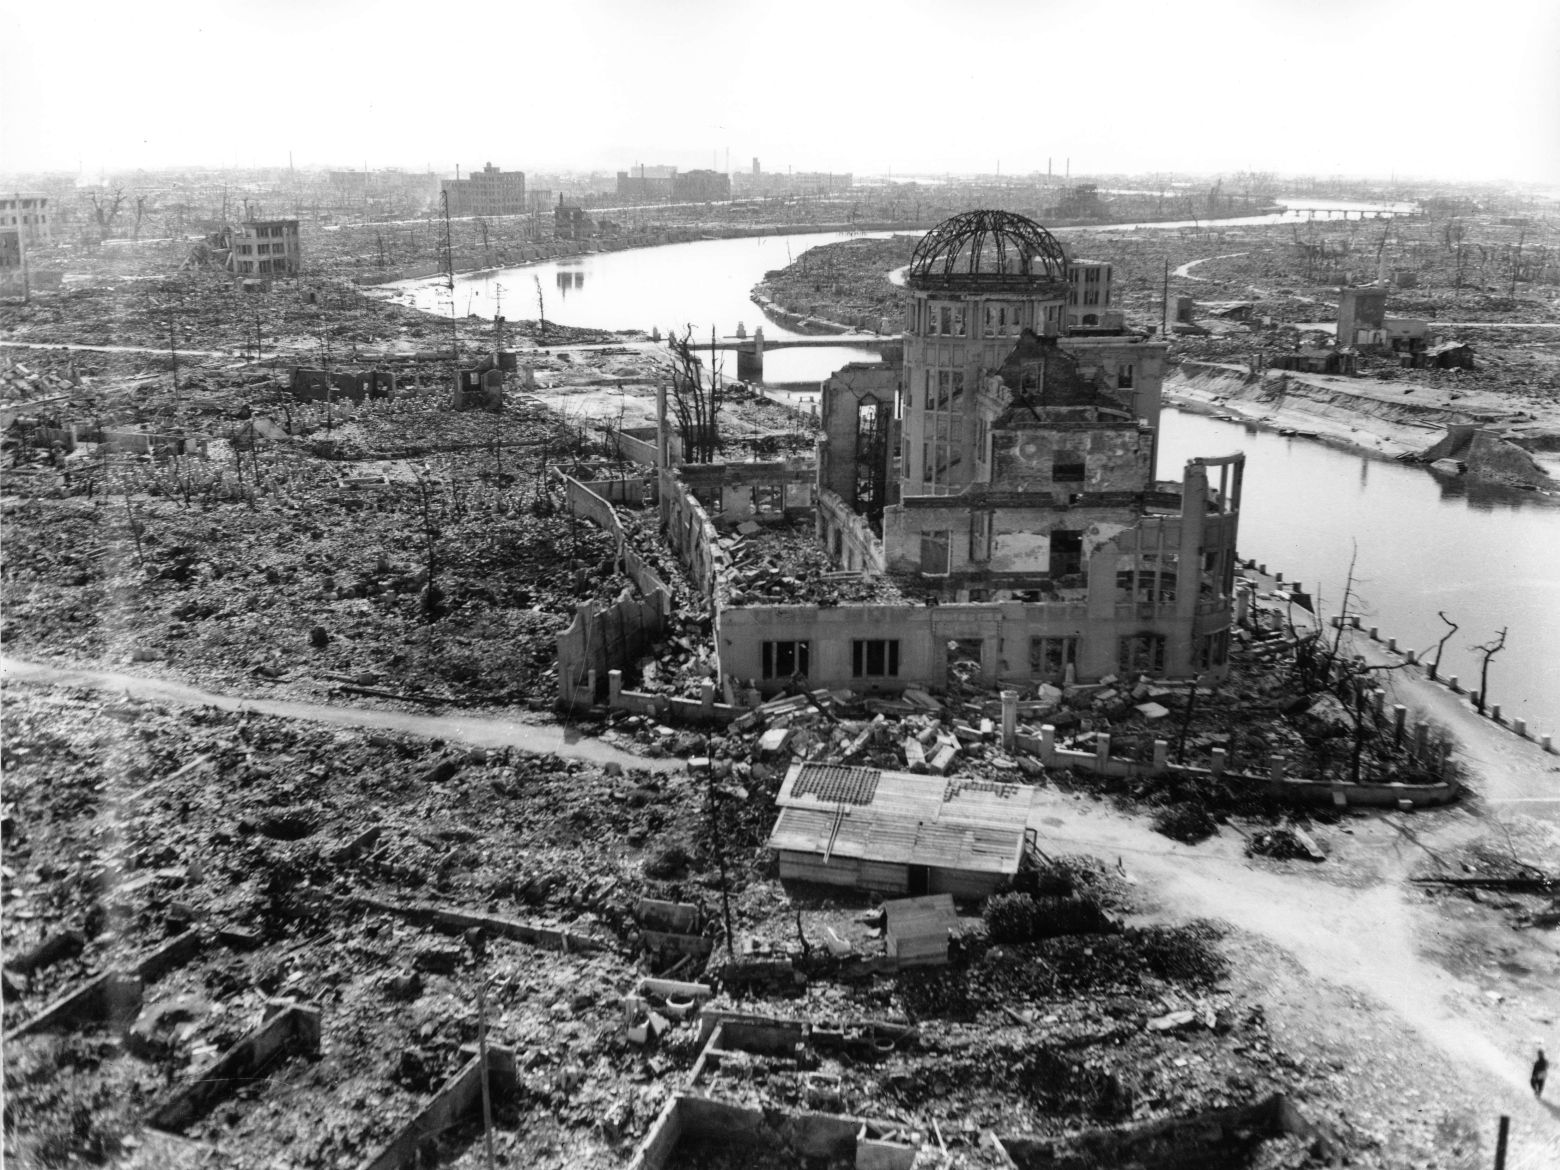 Hiroshima, three months after the atomic bomb was dropped